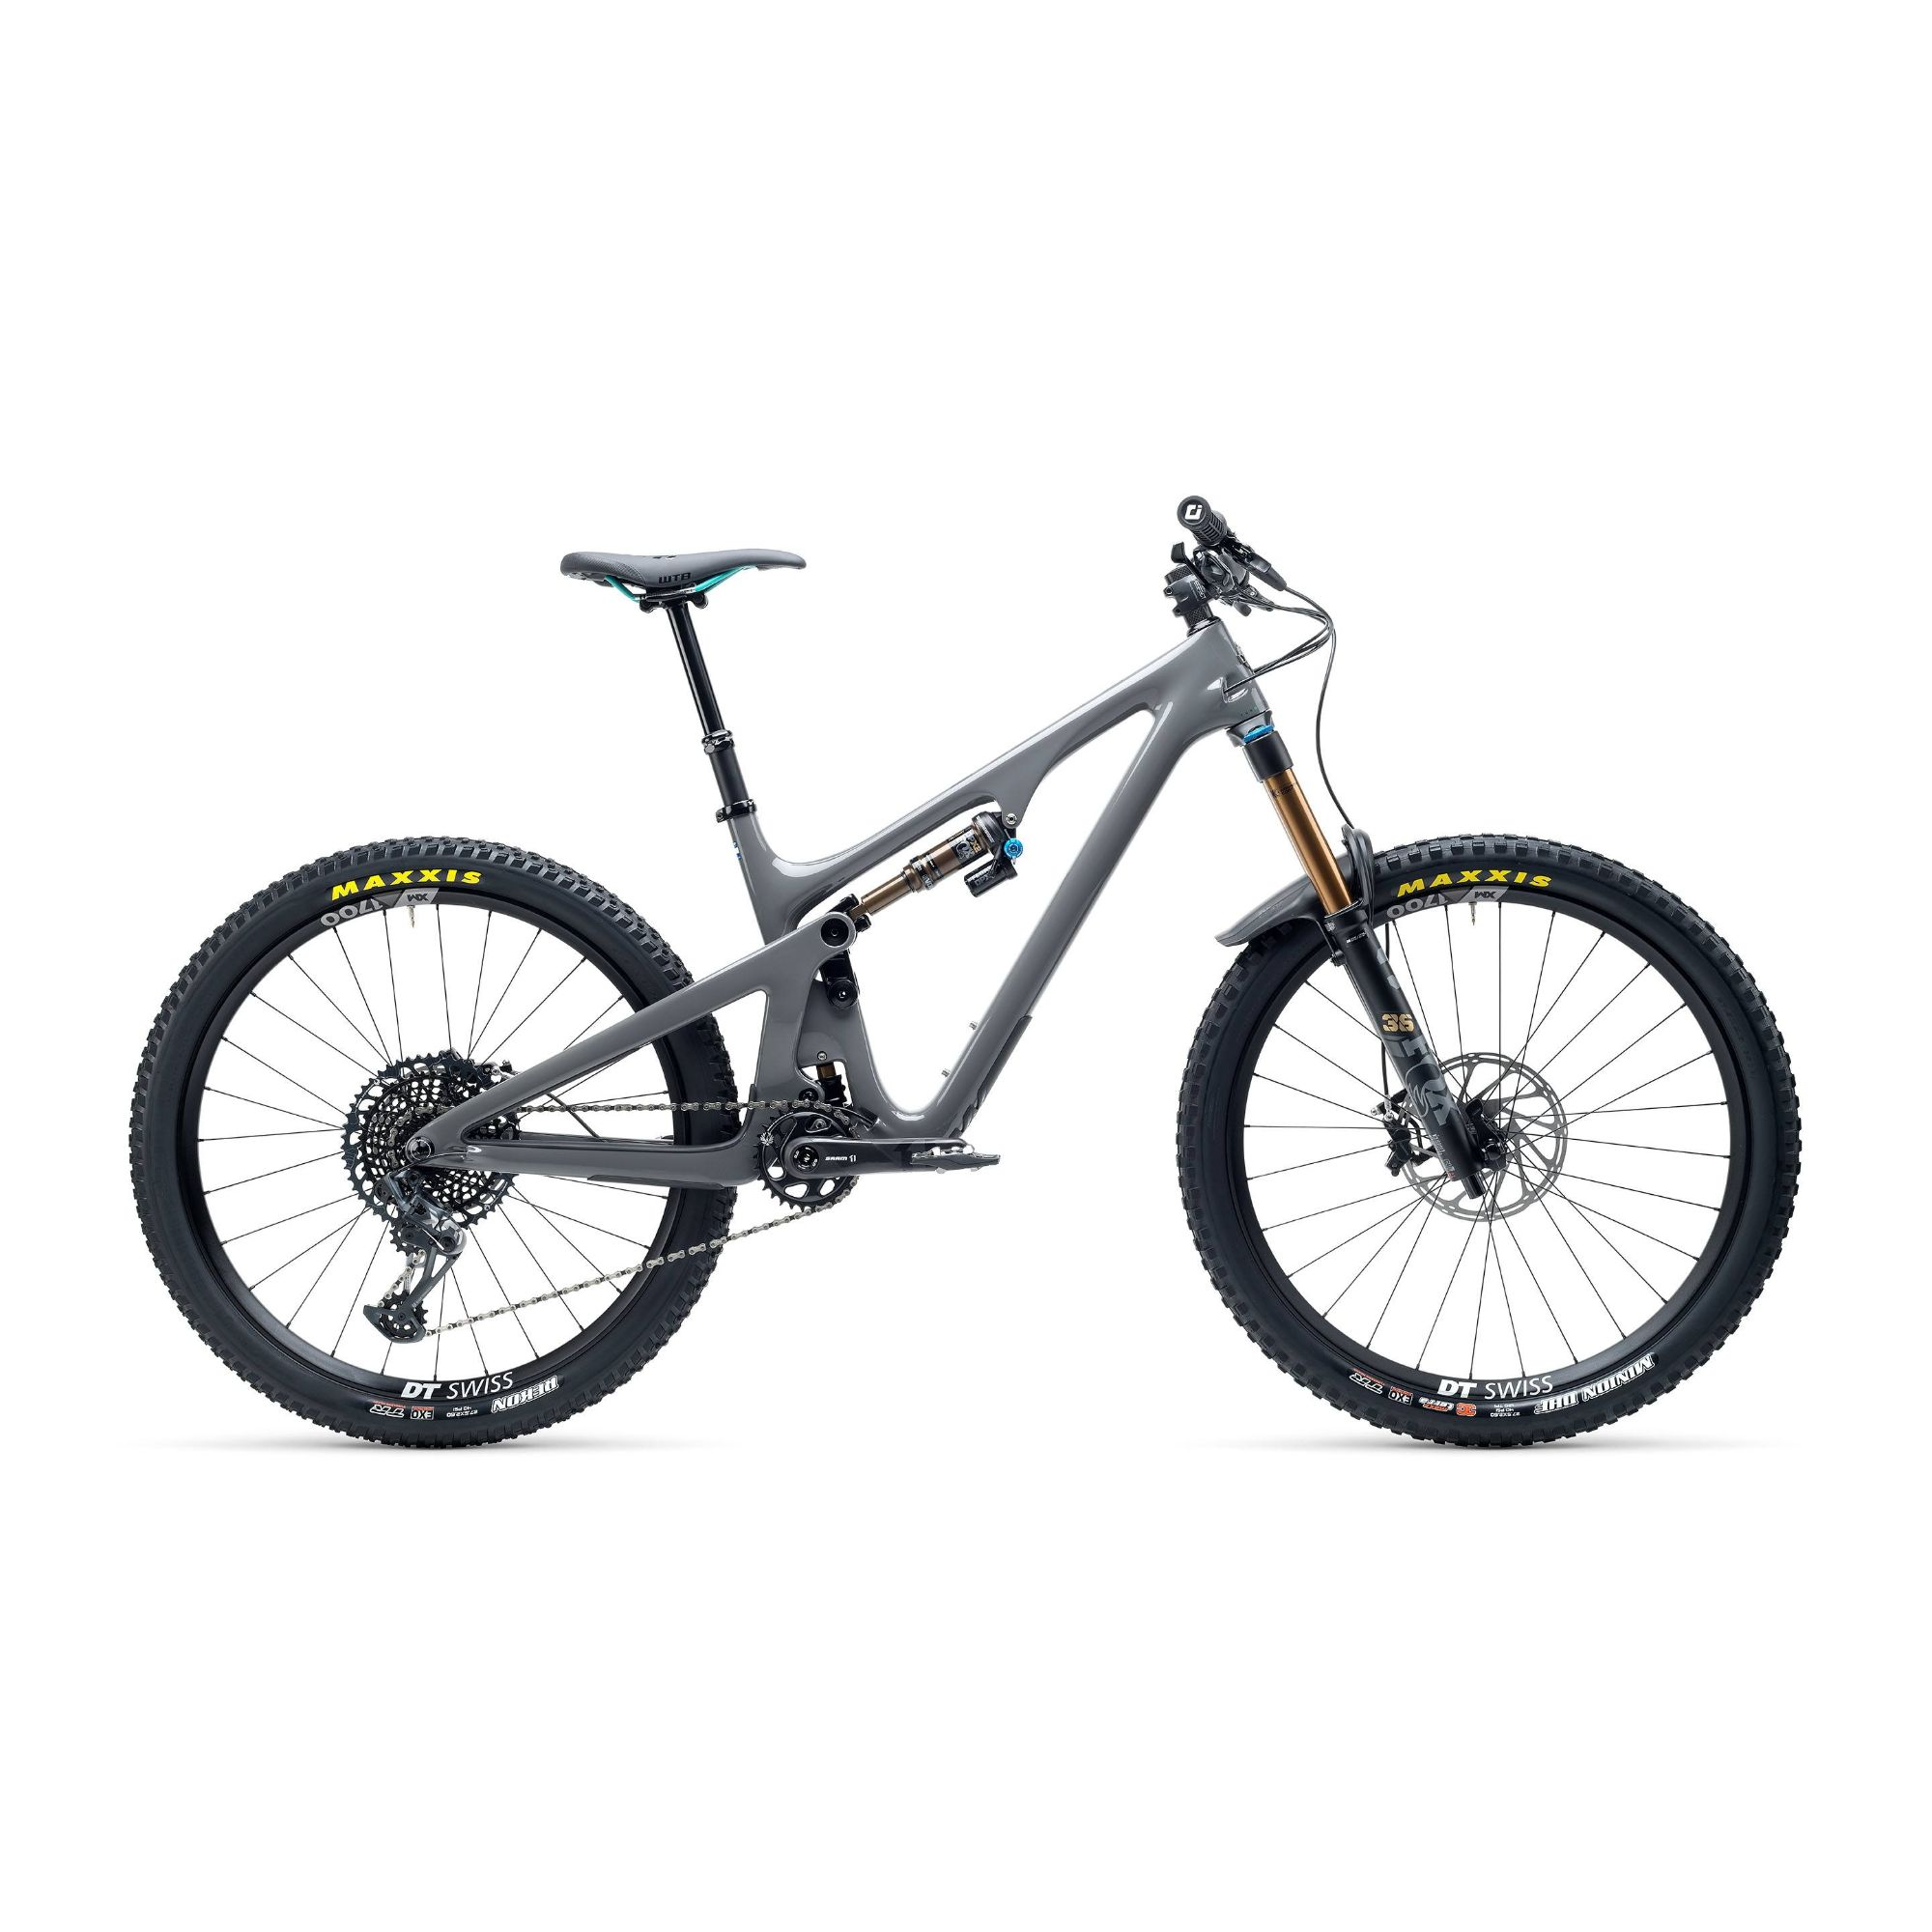 Yeti SB140 T Series T2 27.5 GX Eagle Carbon Mountain Bike 2021 SMOKE